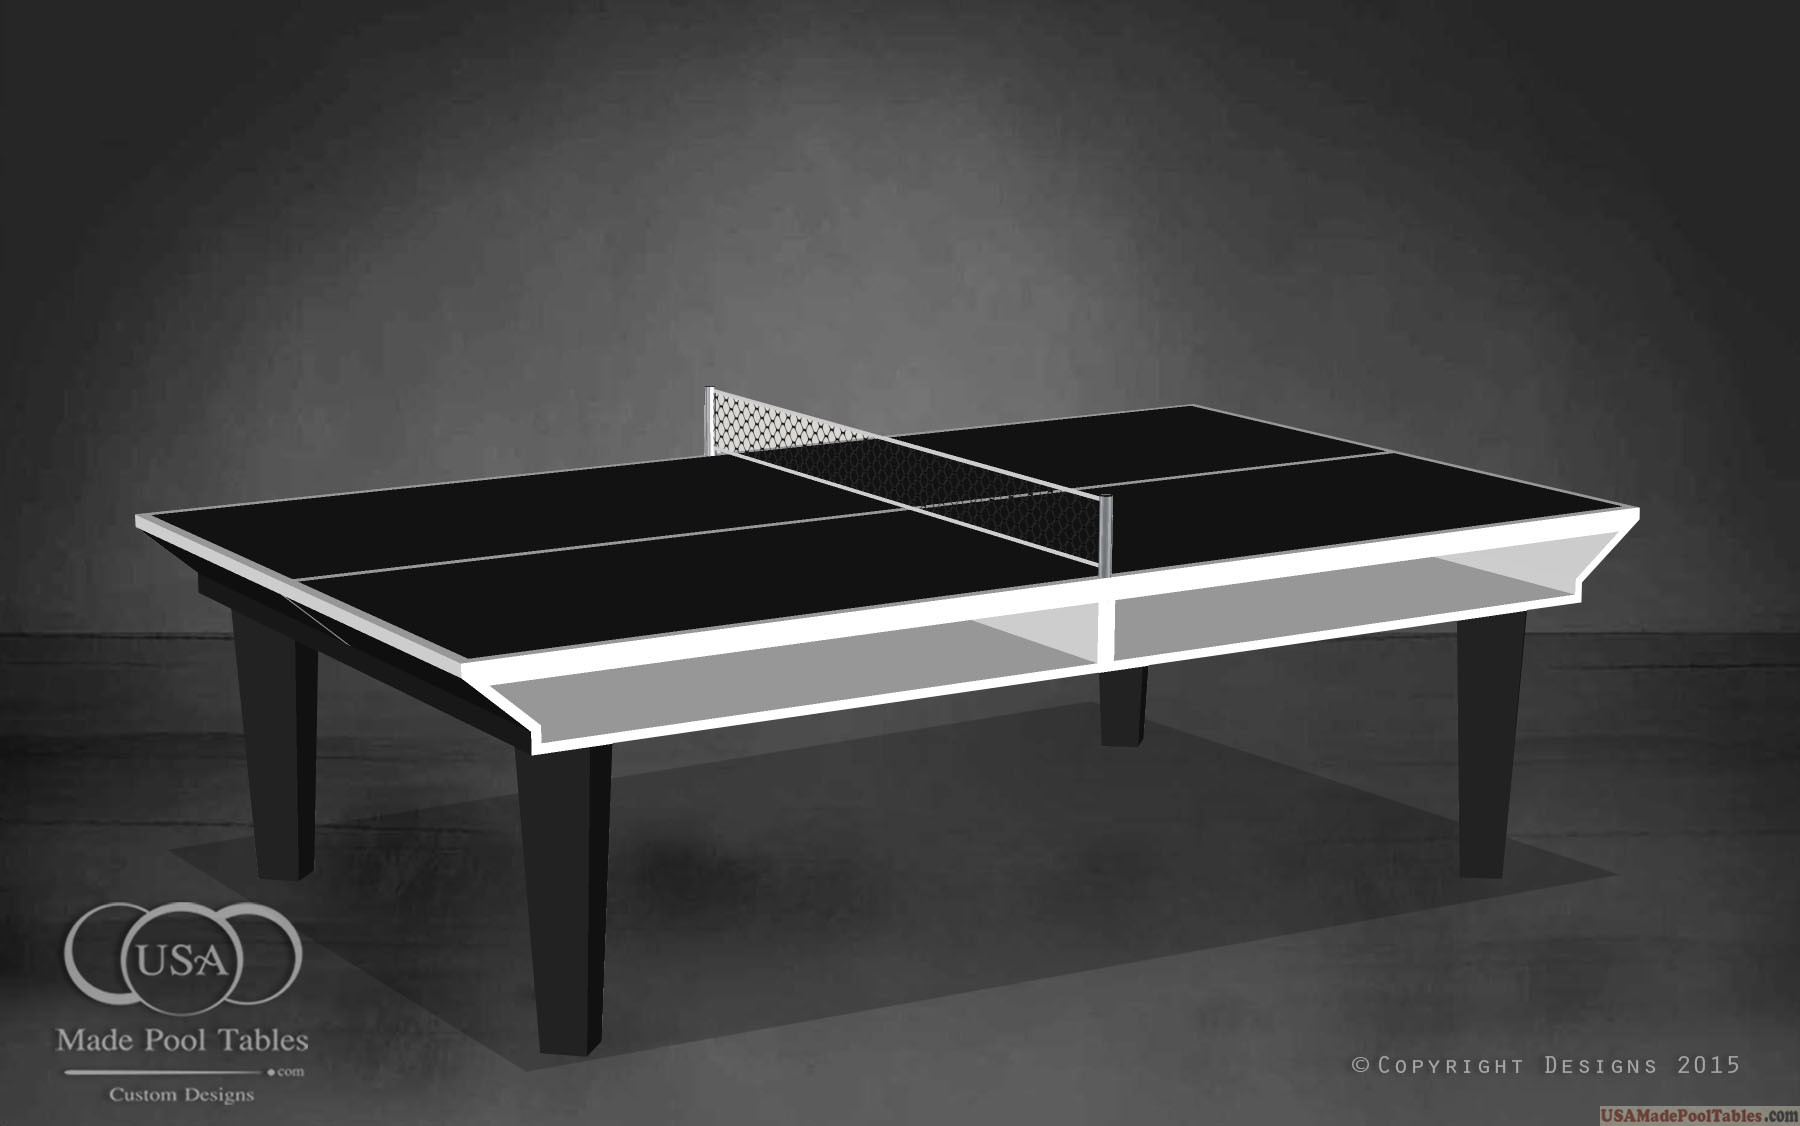 PING PONG TABLES : TENNIS TABLES